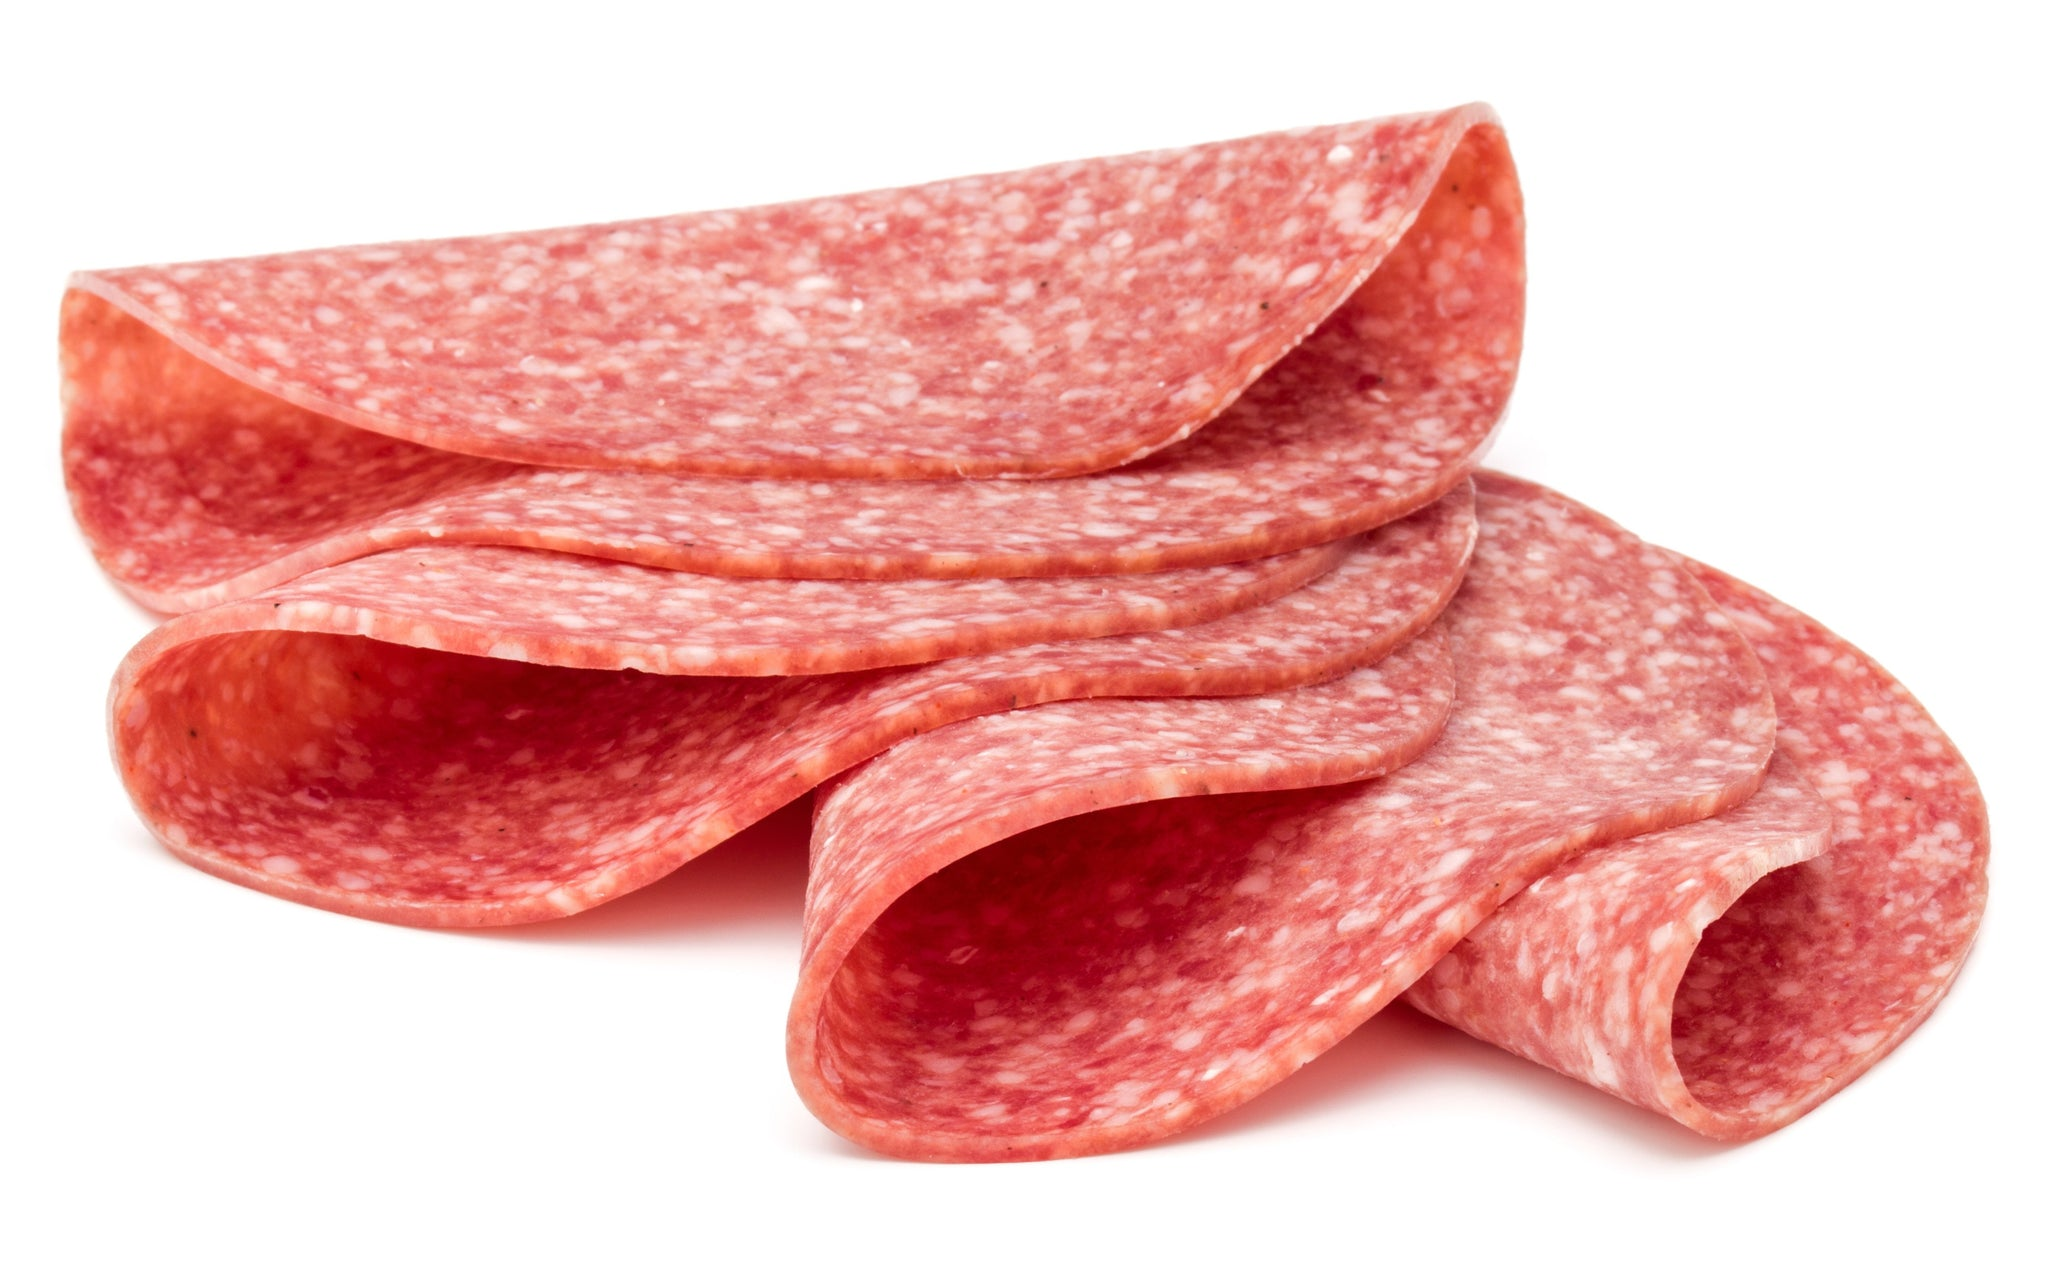 bel>Running W Salami, Sliced